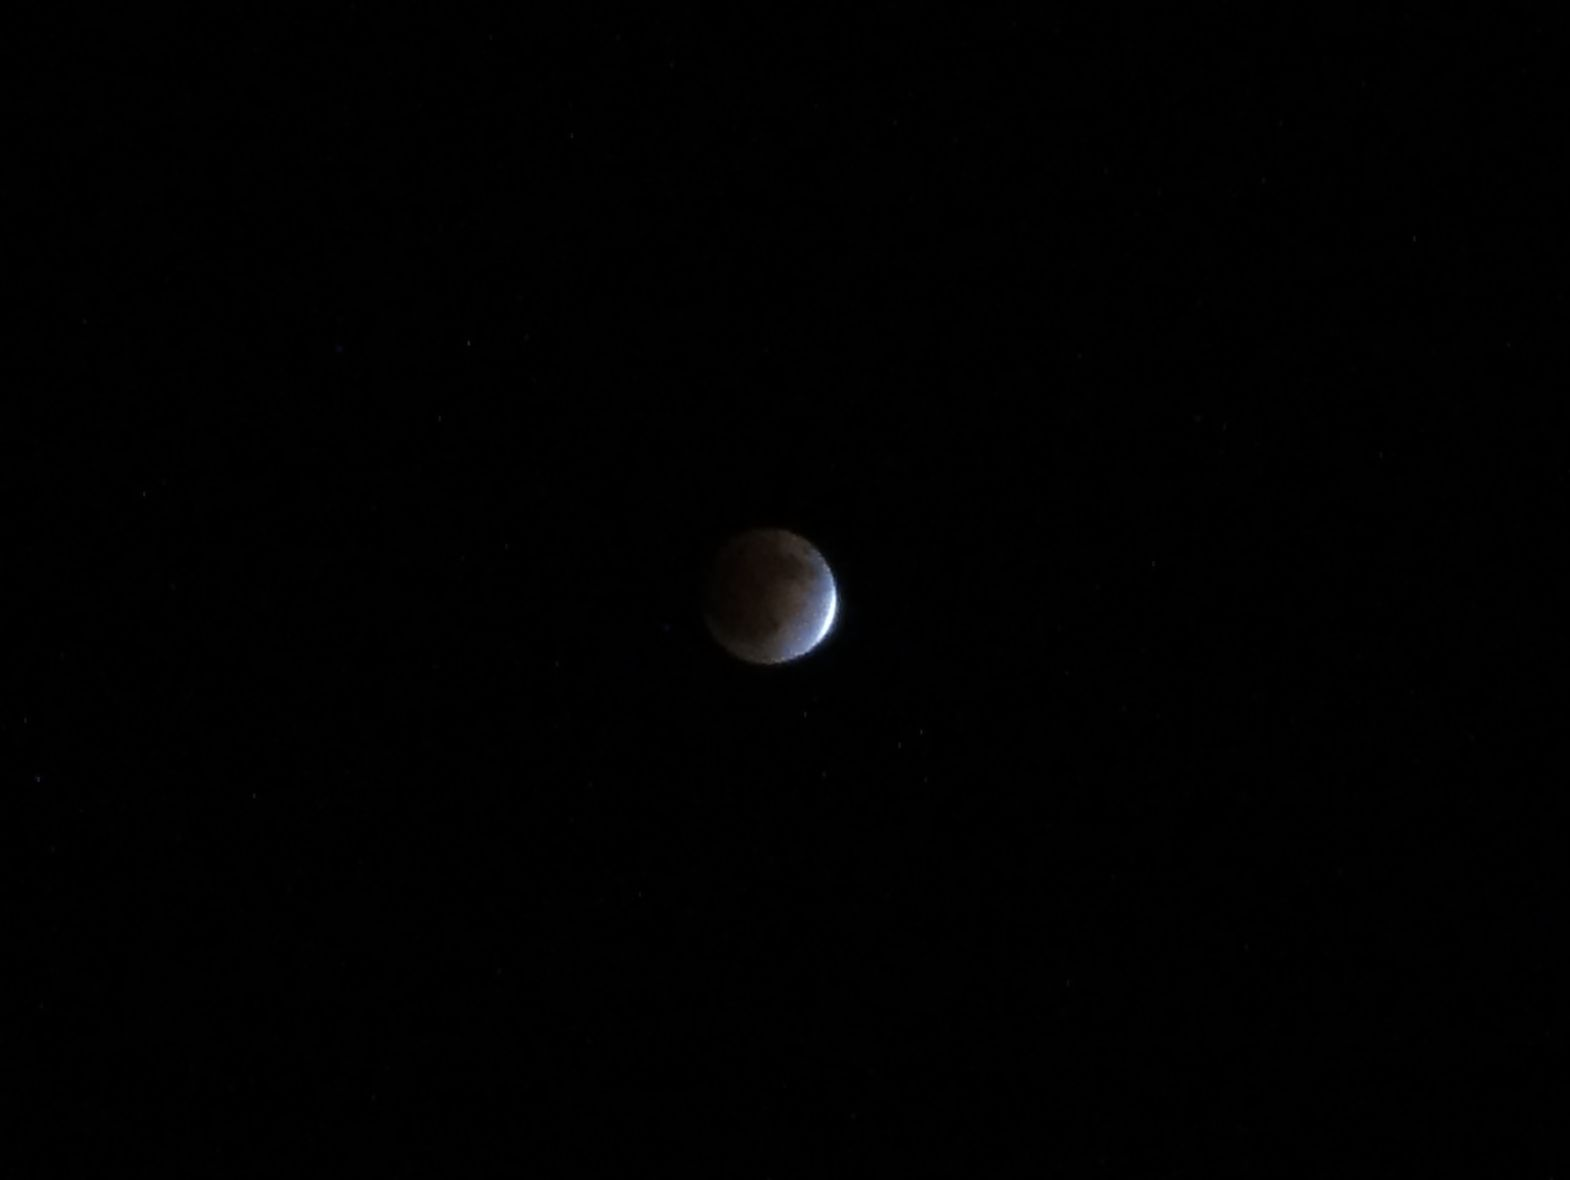 lunar_eclipse_129.jpg